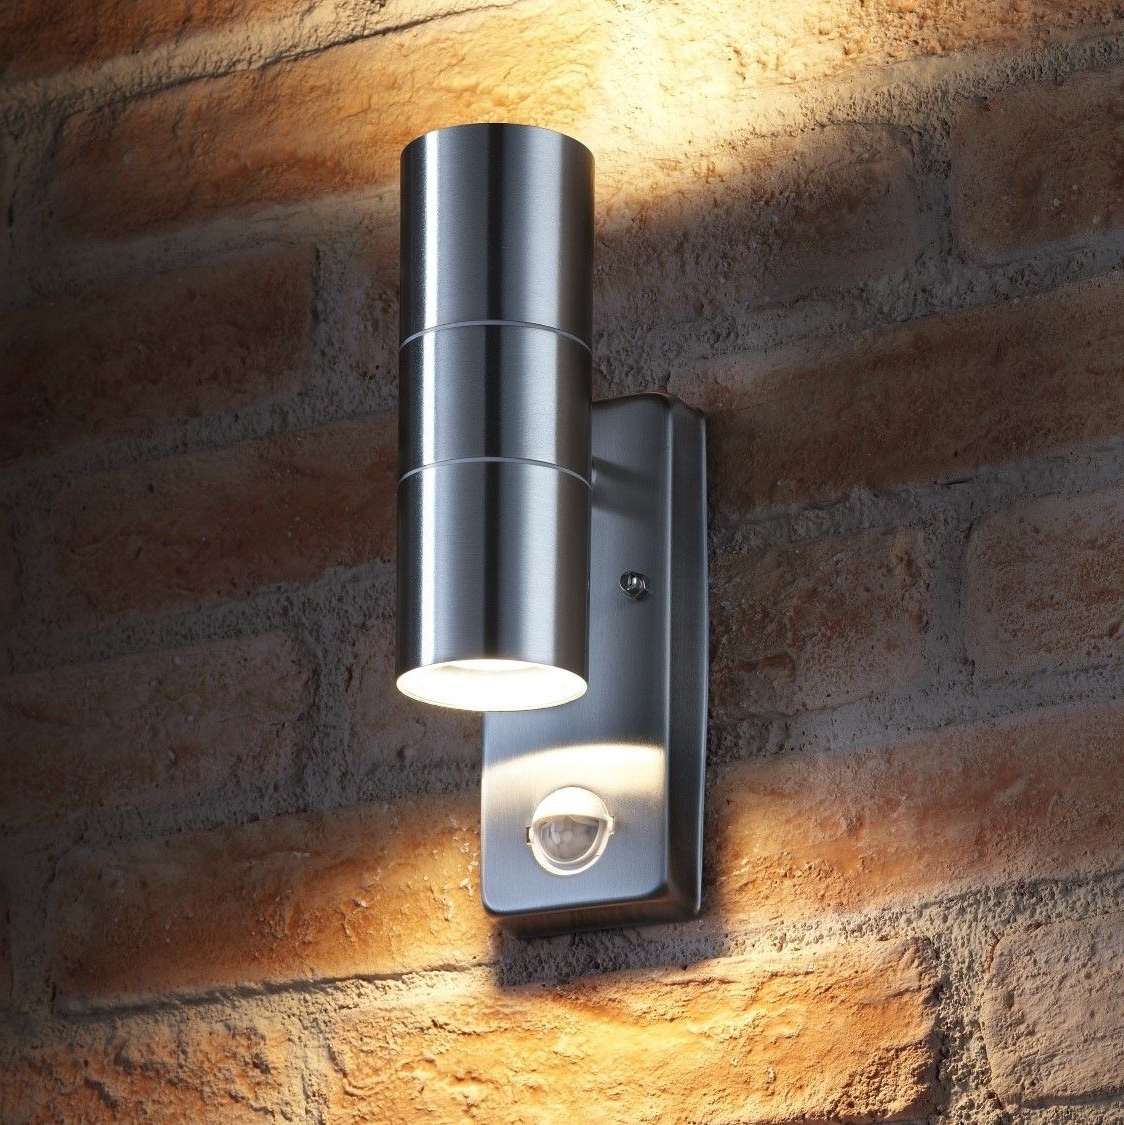 Latest Auraglow Pir Motion Sensor Stainless Steel Up & Down Outdoor Wall With Outdoor Led Wall Lights With Pir Sensor (View 10 of 20)